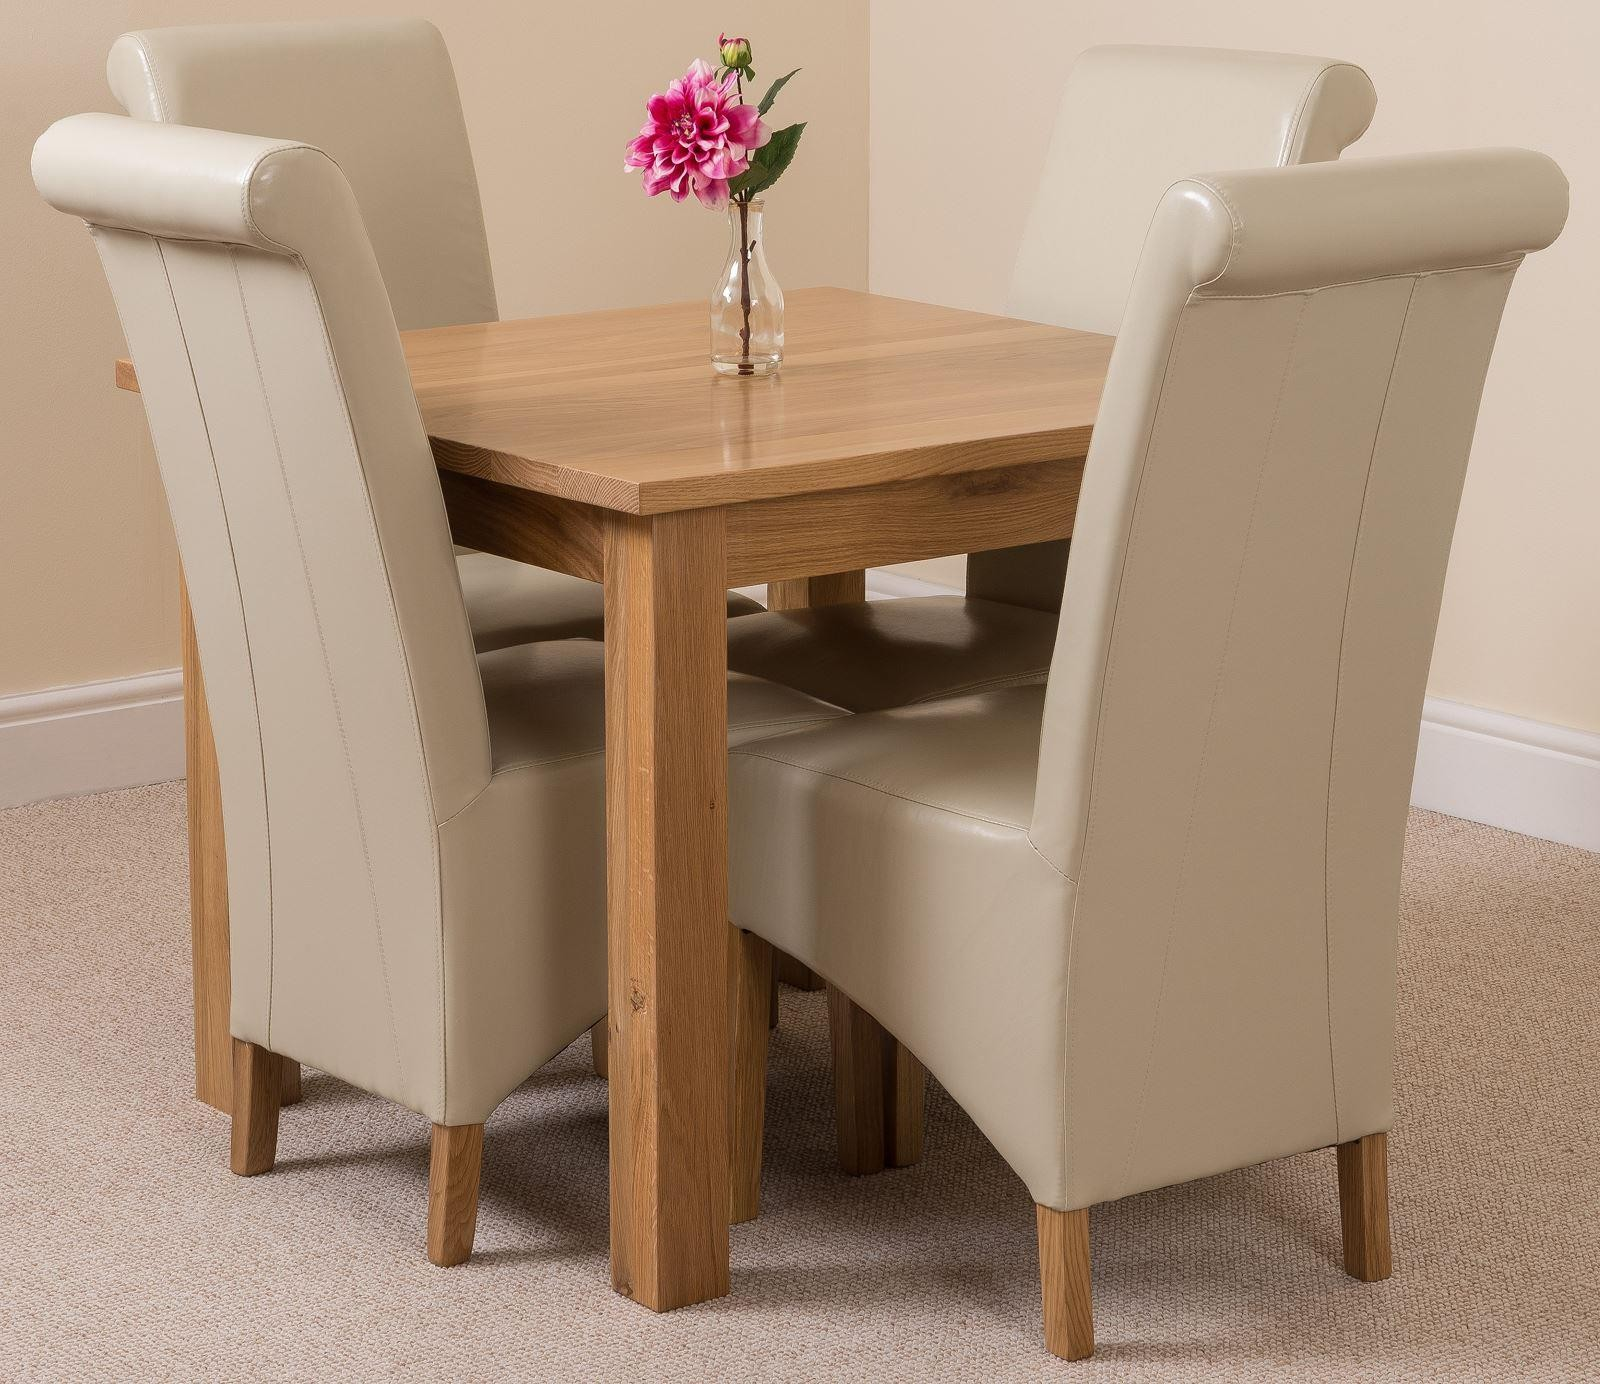 Oslo Solid Oak Dining Table with 4 Montana Dining Chairs [Ivory Leather]